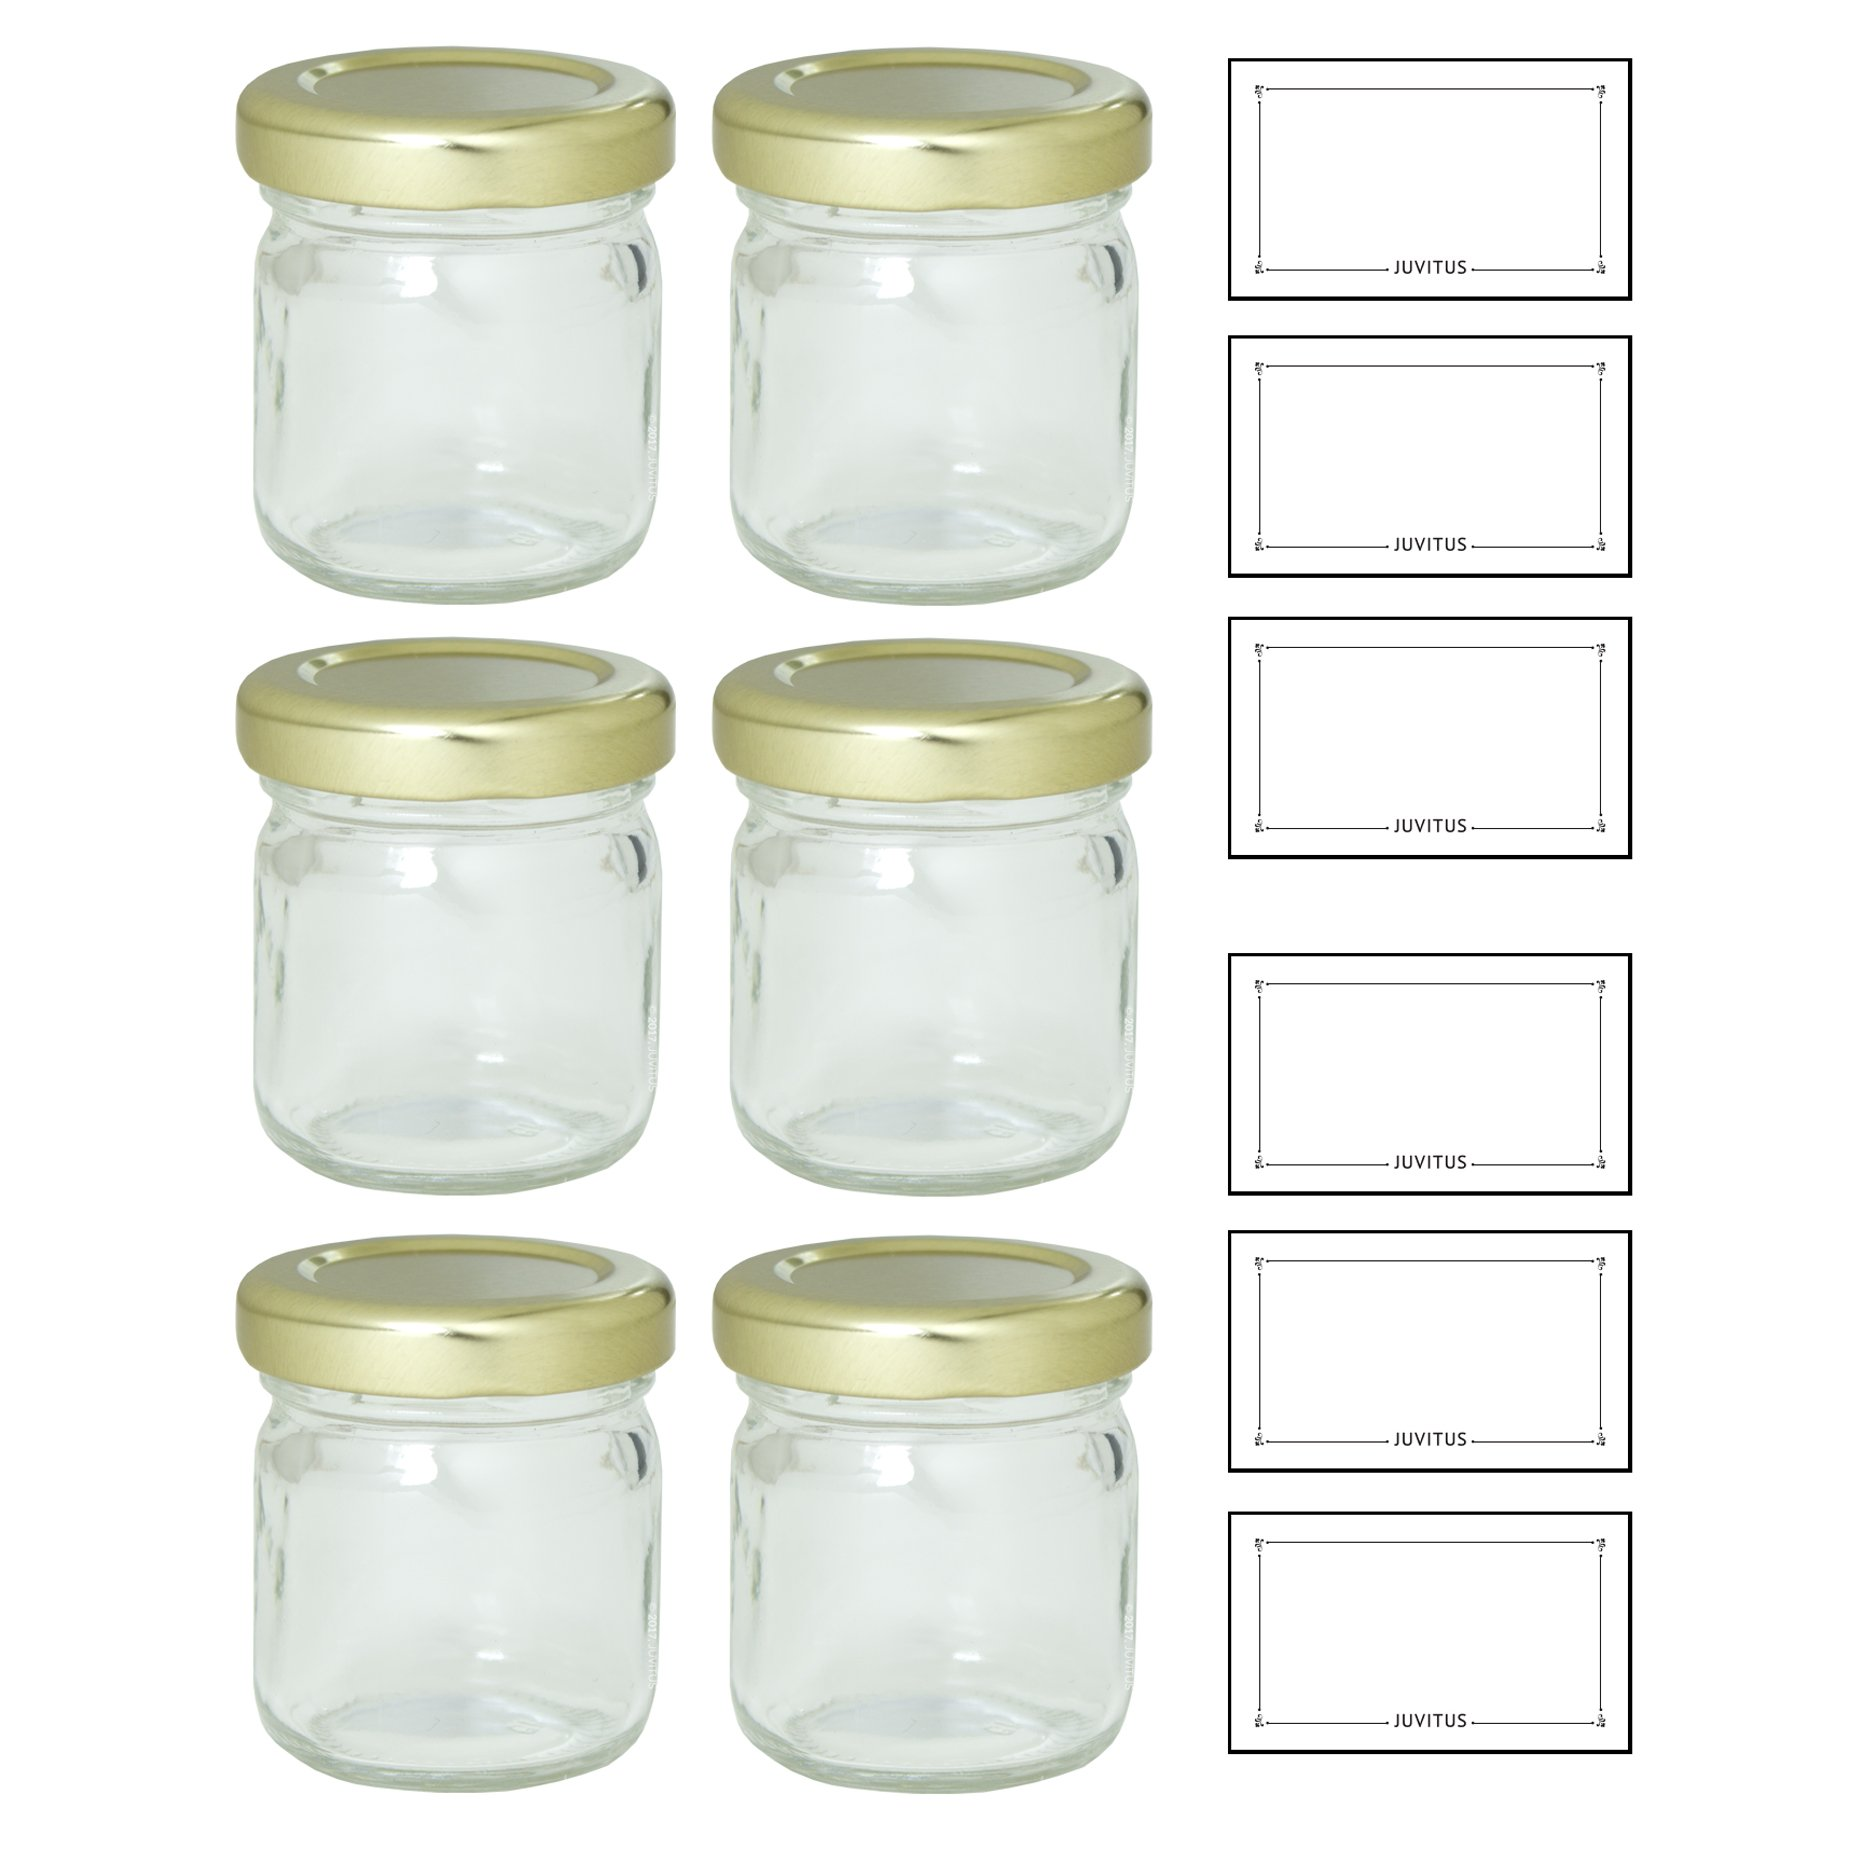 Clear 1.25 oz Thick Wall Glass Jar with Gold Metal Lined Lid (6 pack) Food Grade, Lead Free, Made in USA for Jams and Jellies, Honey, Wedding and Shower Gifts, Baby Foods, and more! by JUVITUS